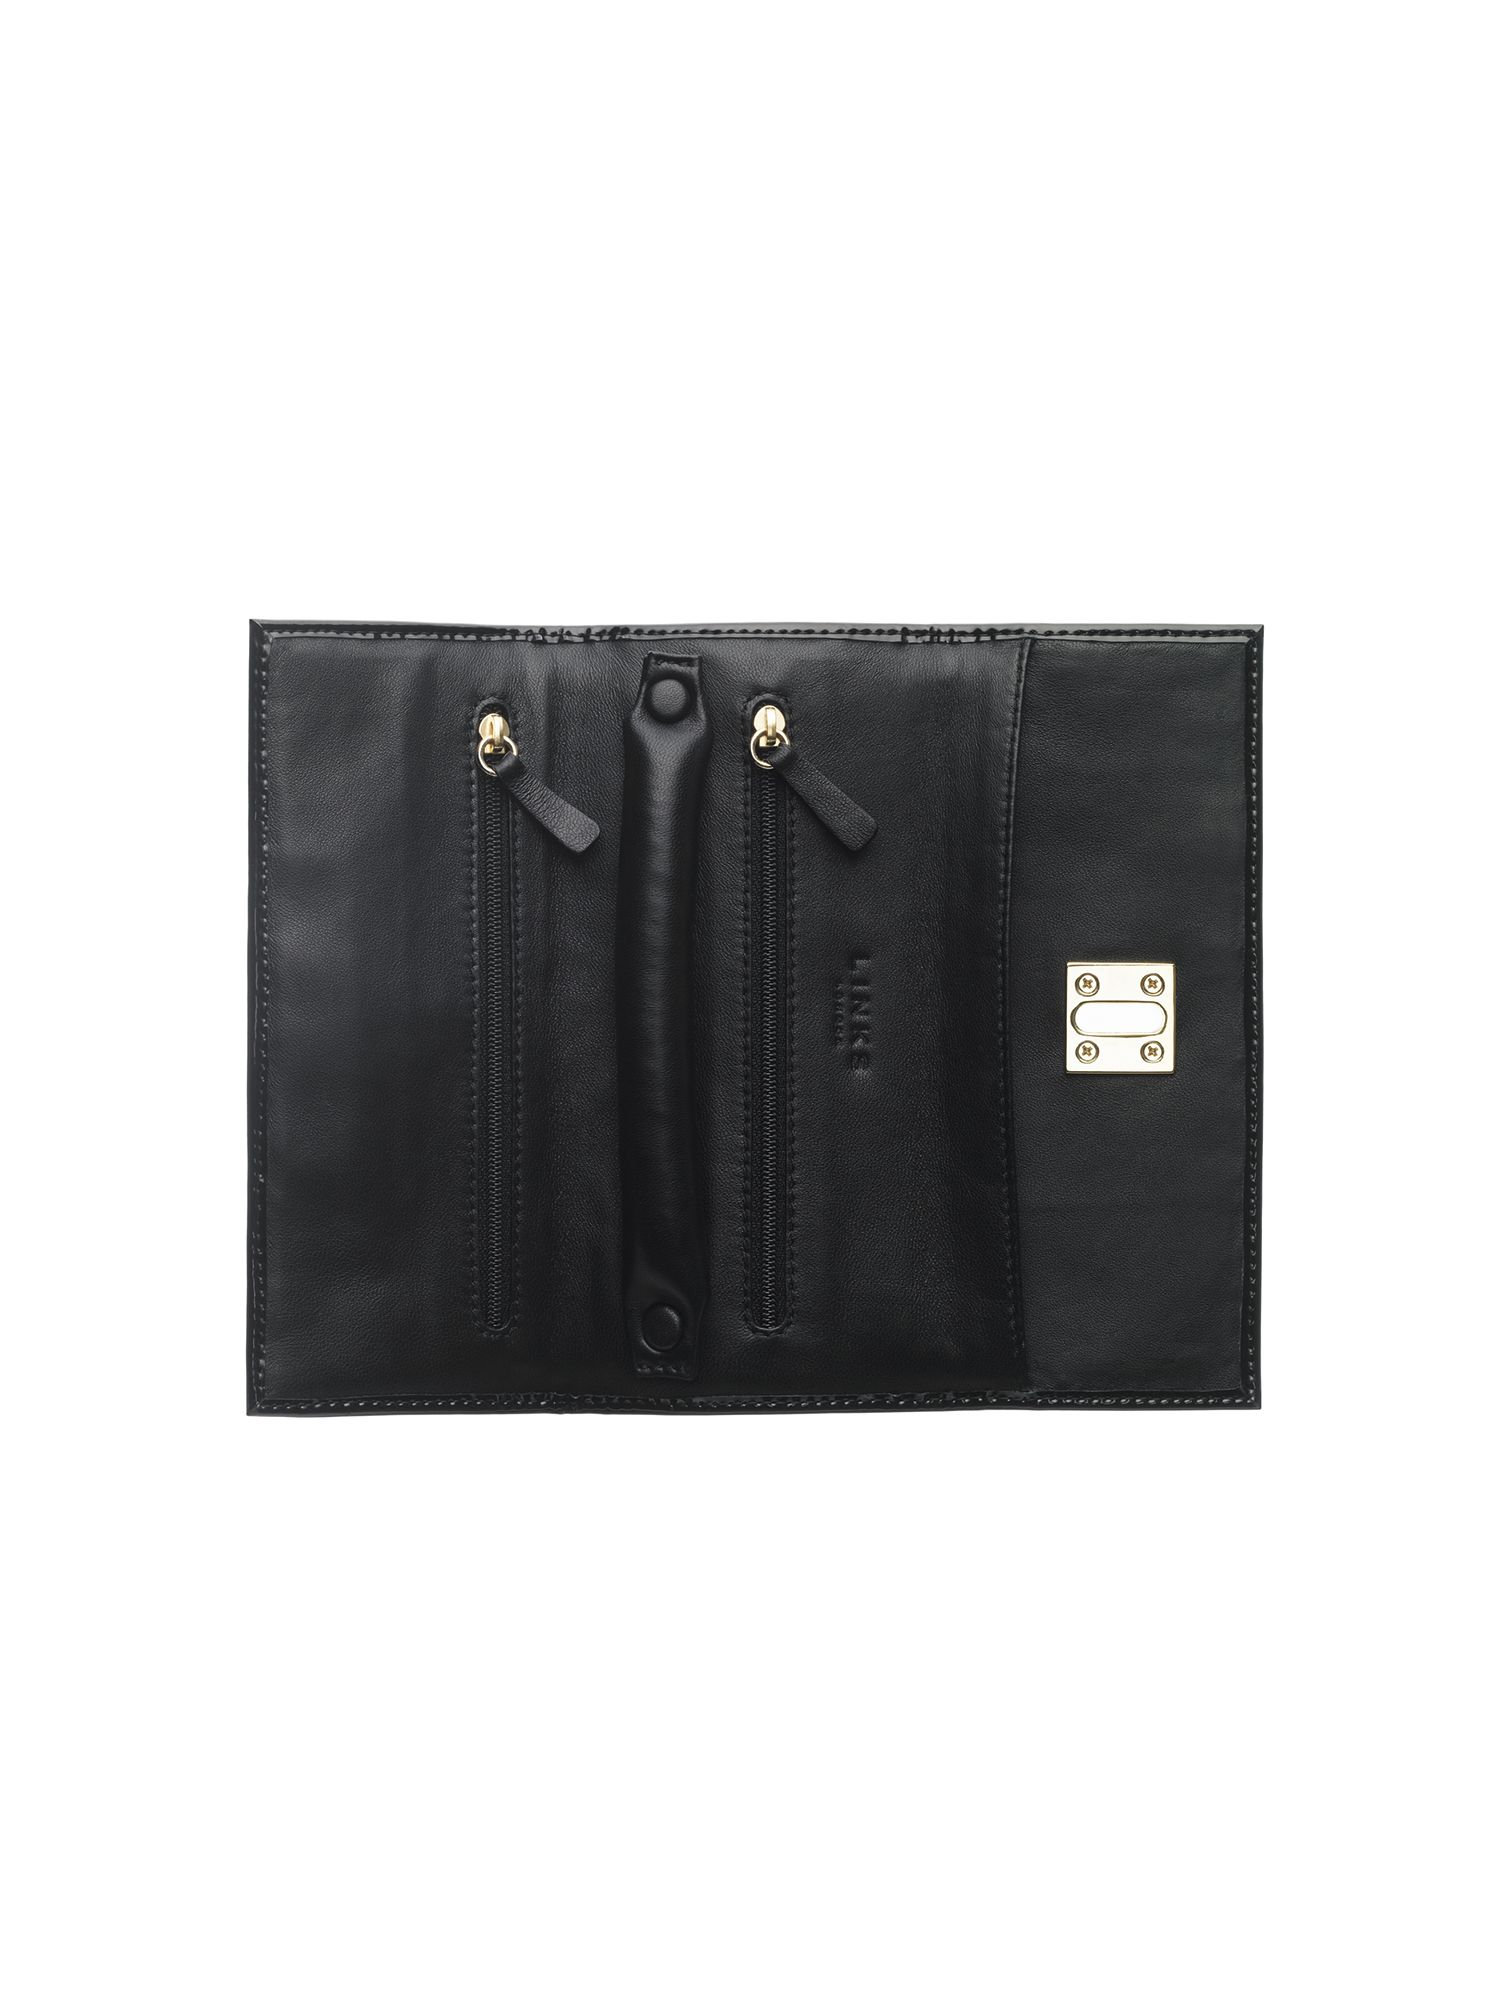 Patent black jewellery roll